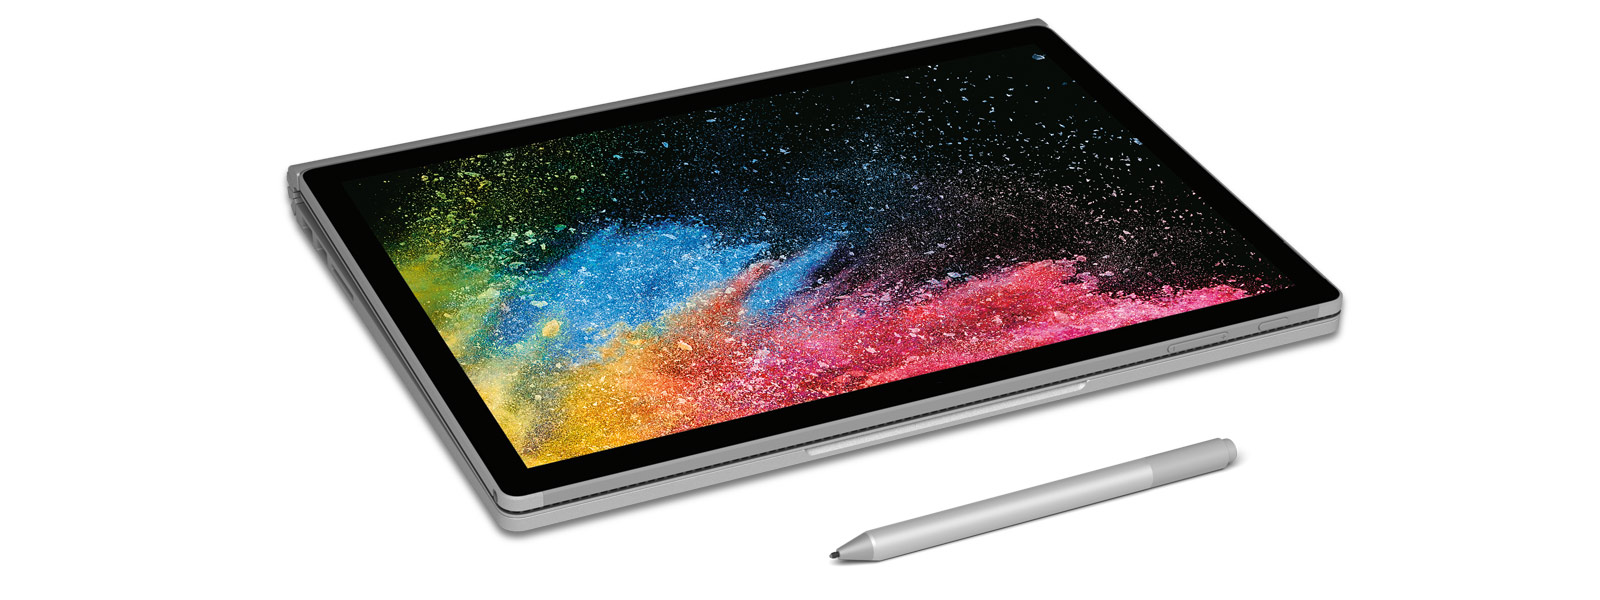 Surface Book 2 in clipboard mode with Surface Pen.